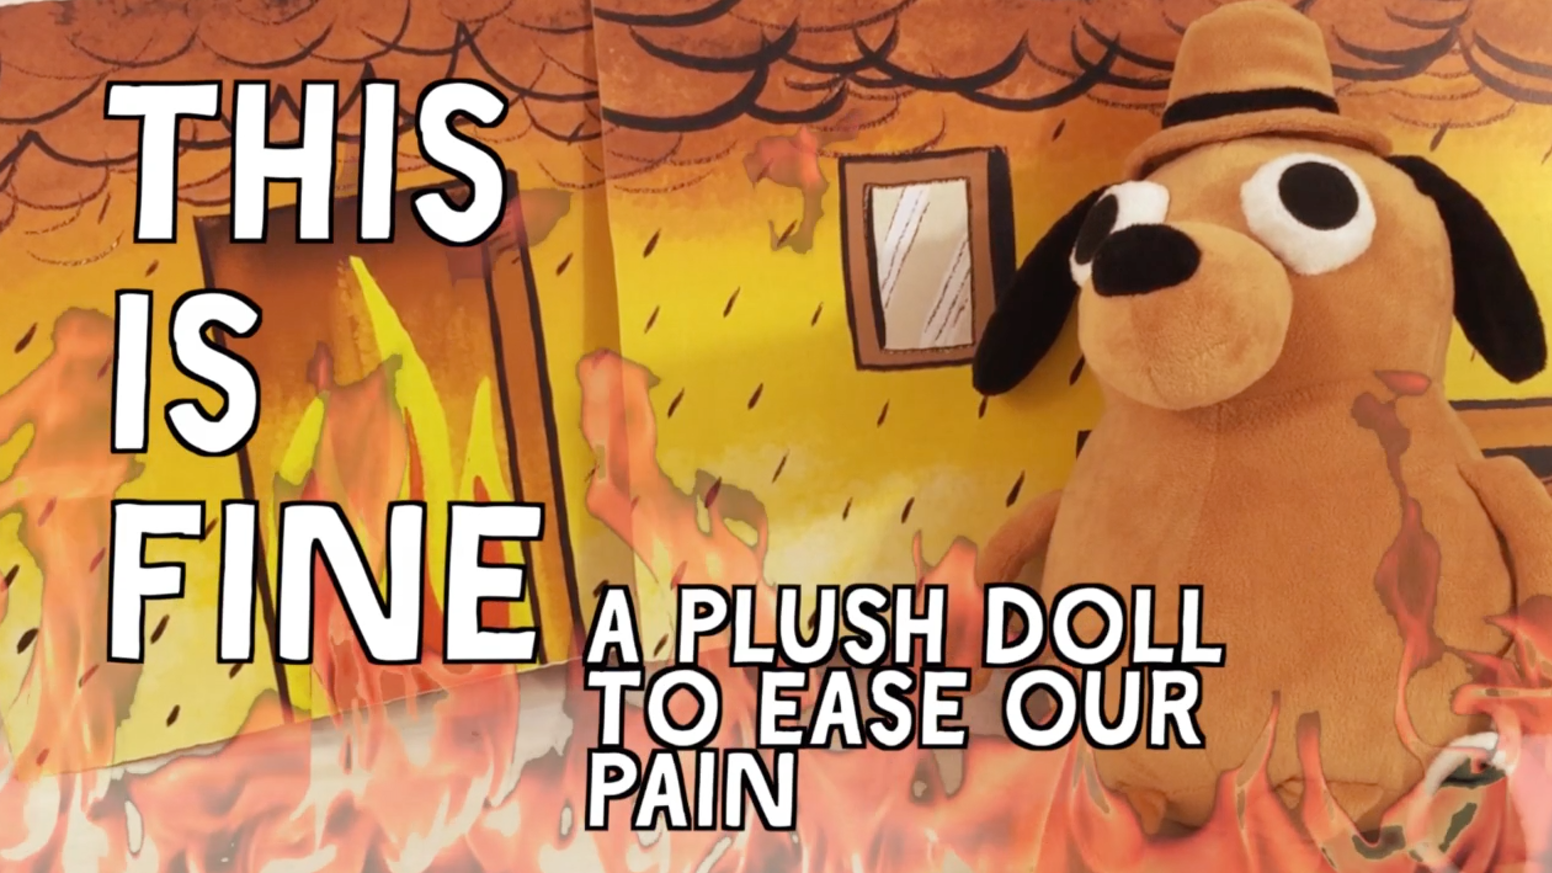 Official plush merch based on the comic/meme that is becoming all too relatable these days. Take the edge off and hug a boy.